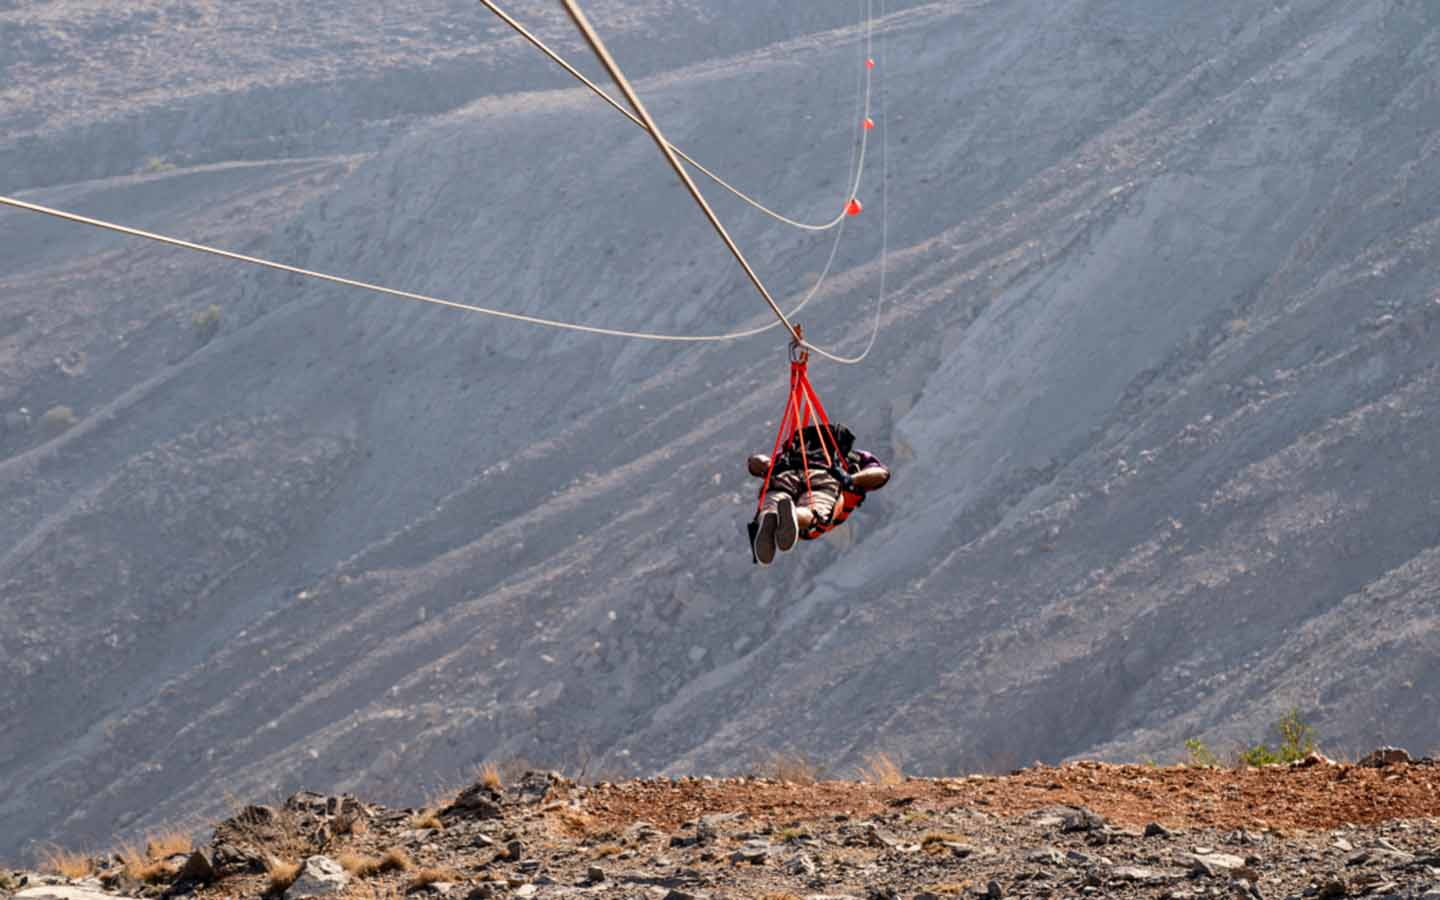 zipling in Jebel Jais